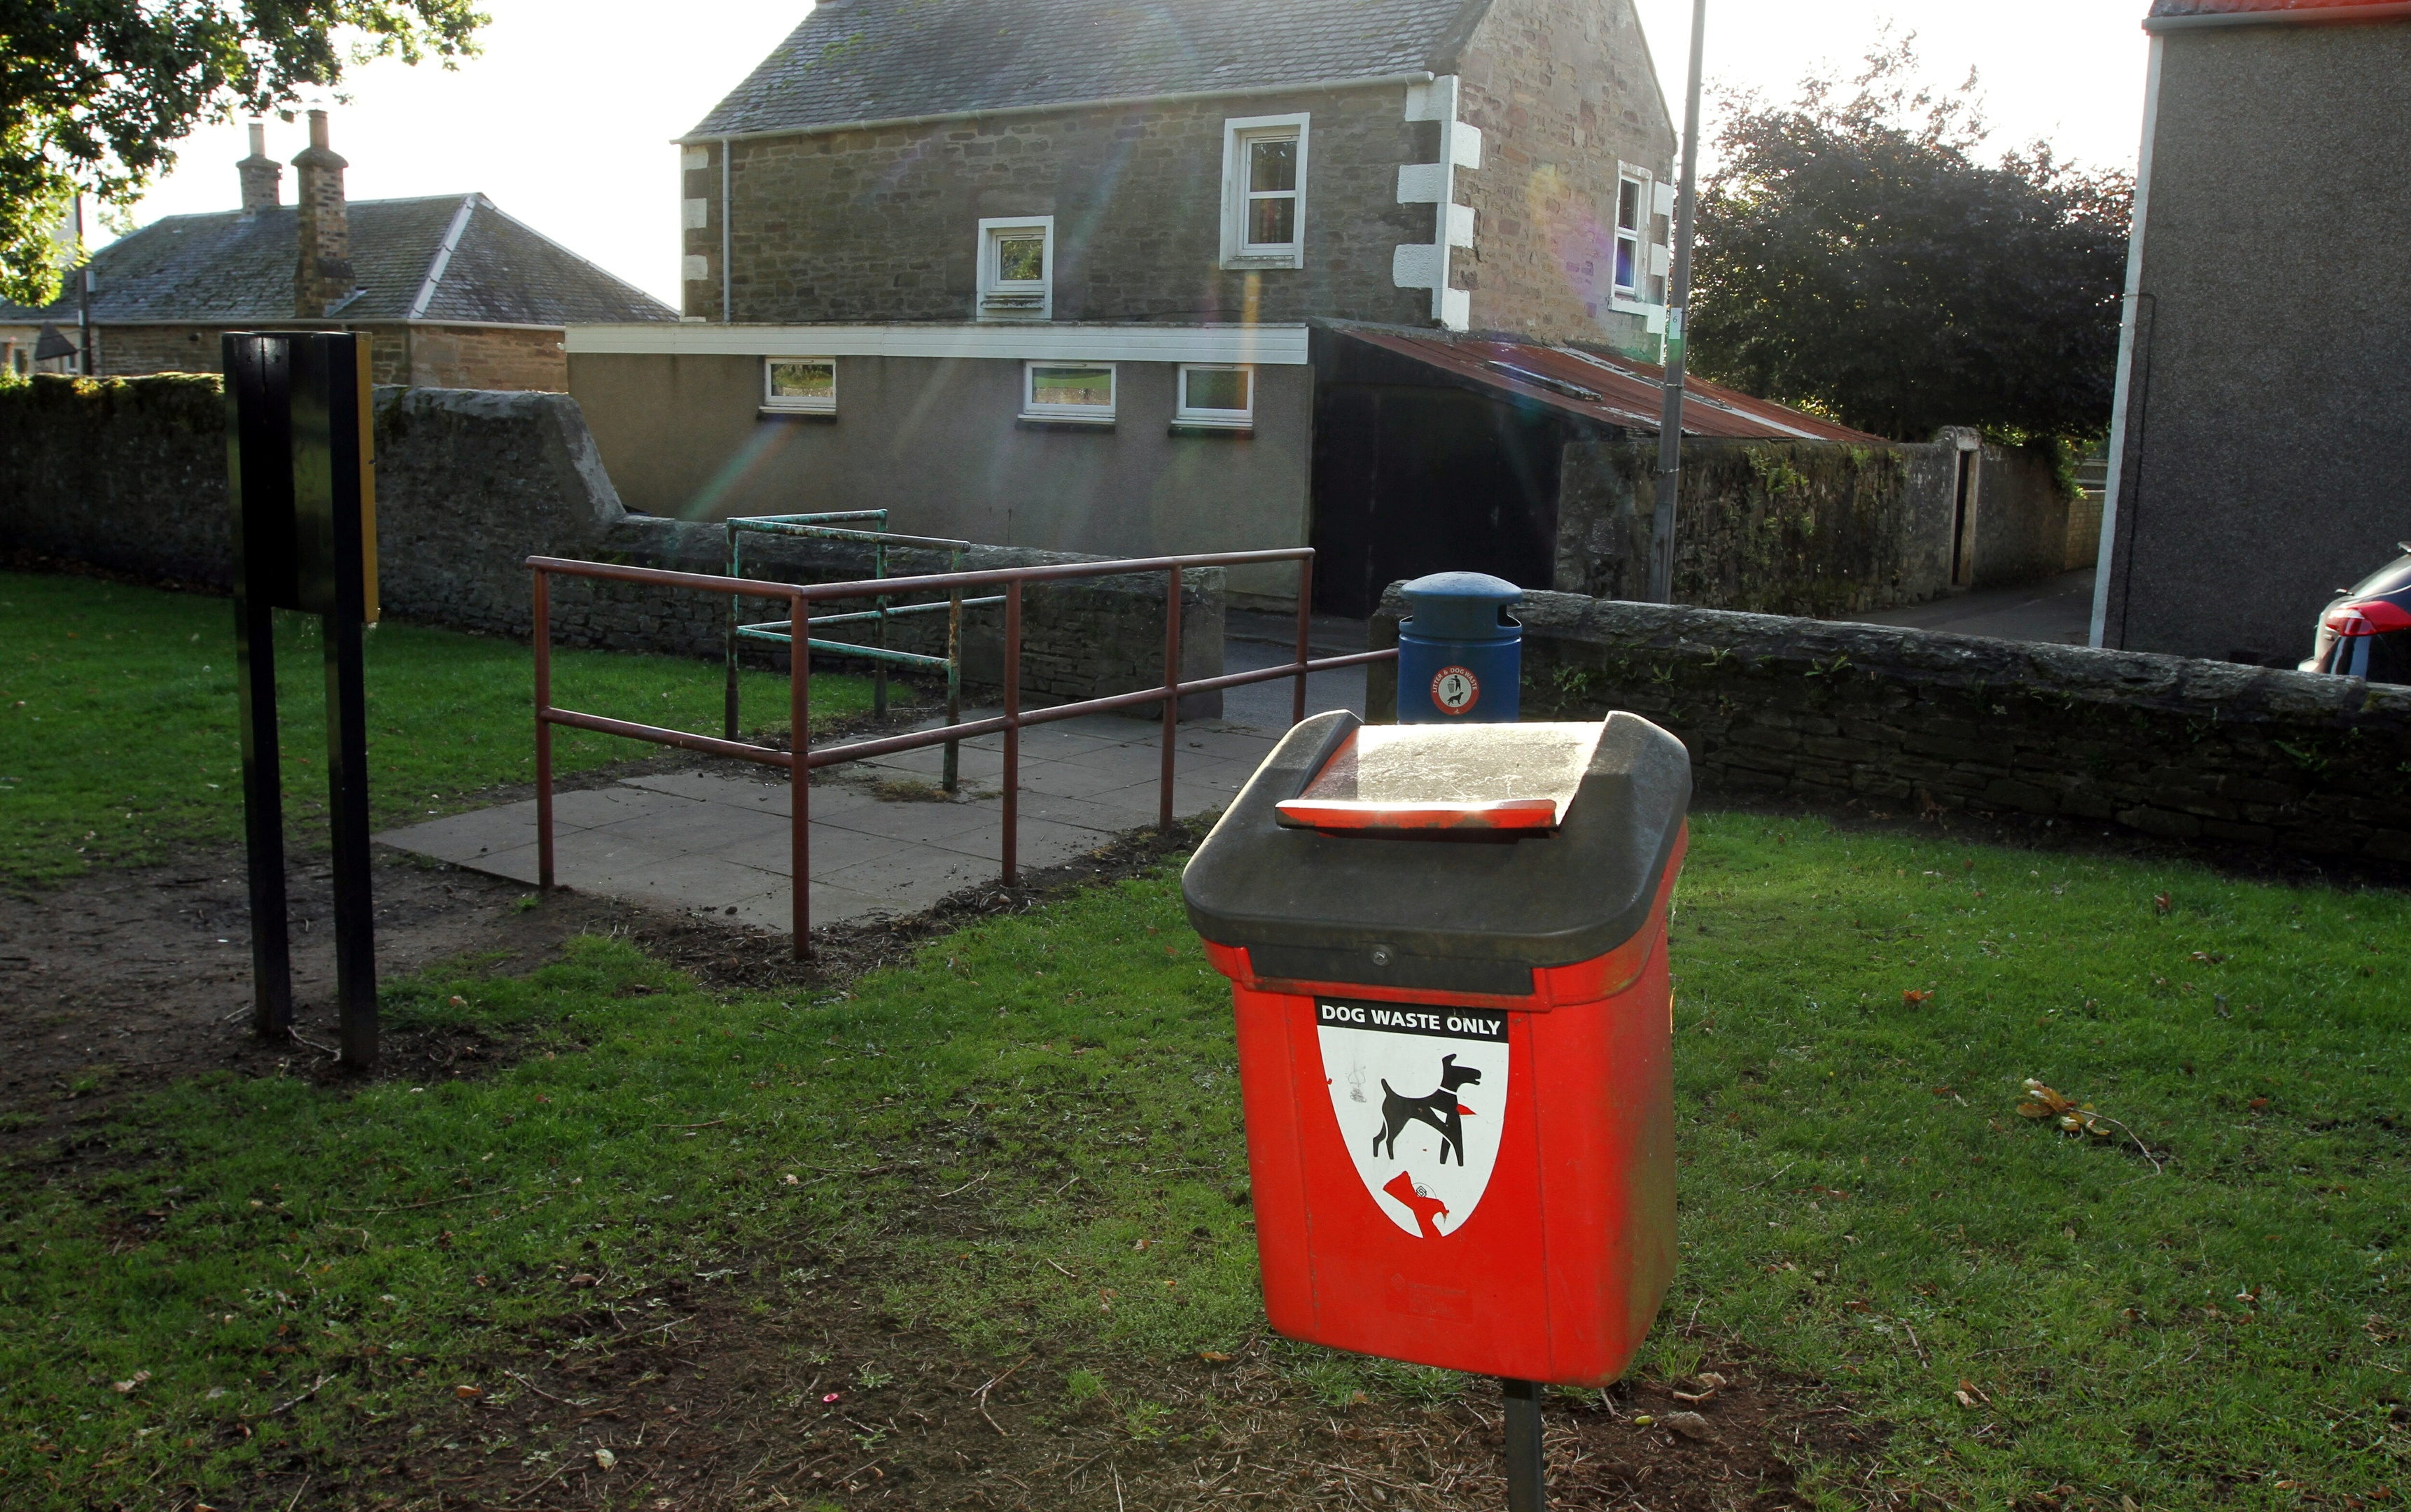 The 'poo fight' occurred near the entrance to Carnoustie House Grounds